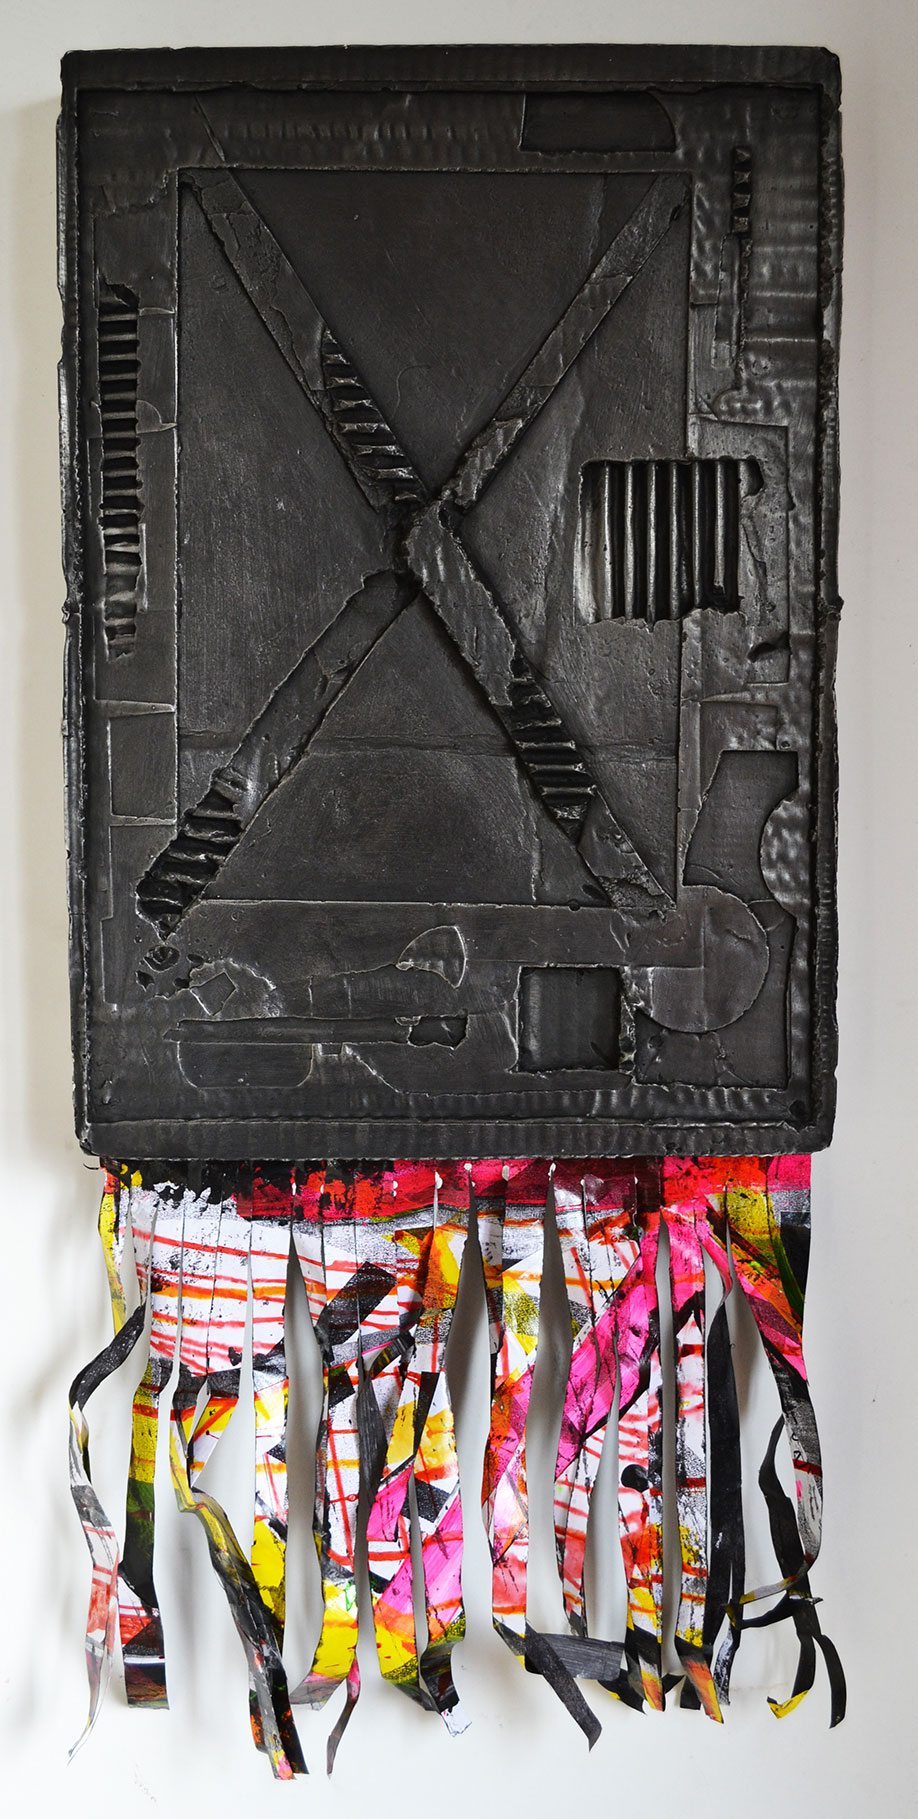 <b>Title: </b>The Minutemen<br /><b>Year: </b>2013<br /><b>Medium: </b>Plaster of Paris, grate polish, spray paint, paper<br /><b>Size: </b>73 x 32 cm